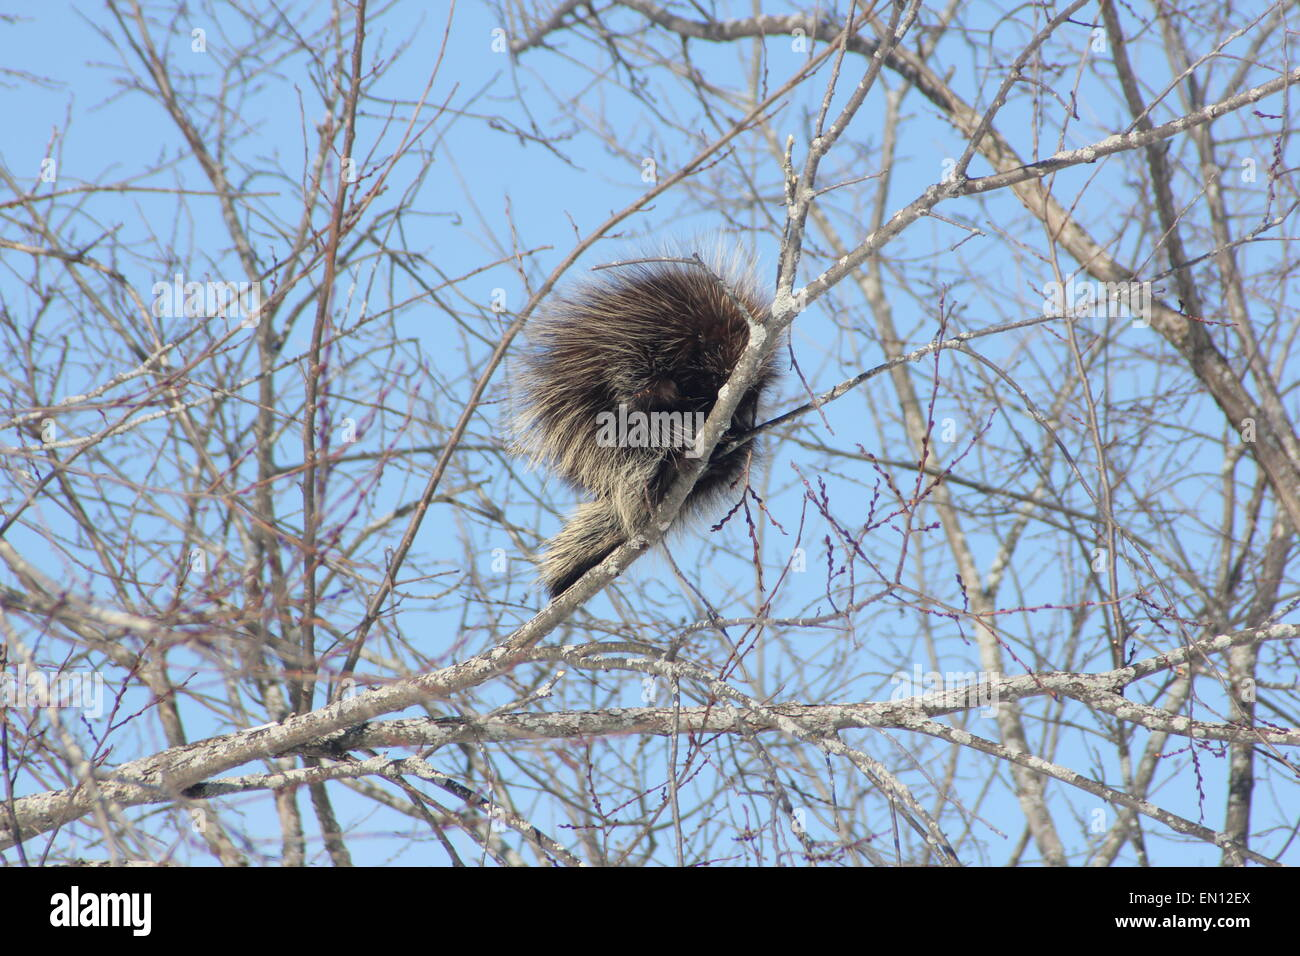 North American Porcupine (Erethizon dorsatum) on a  tree branch. Porcupines are rodents with a coat of sharp spines, Stock Photo